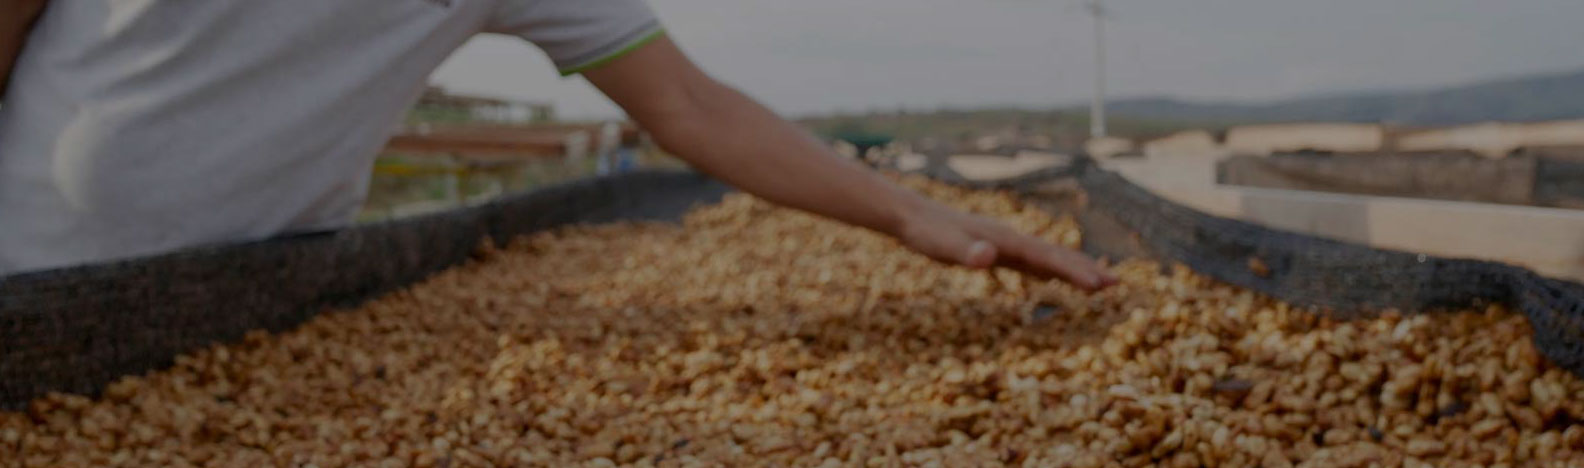 Organic coffee beans seen spread on drying bed with a hand grazing over them.